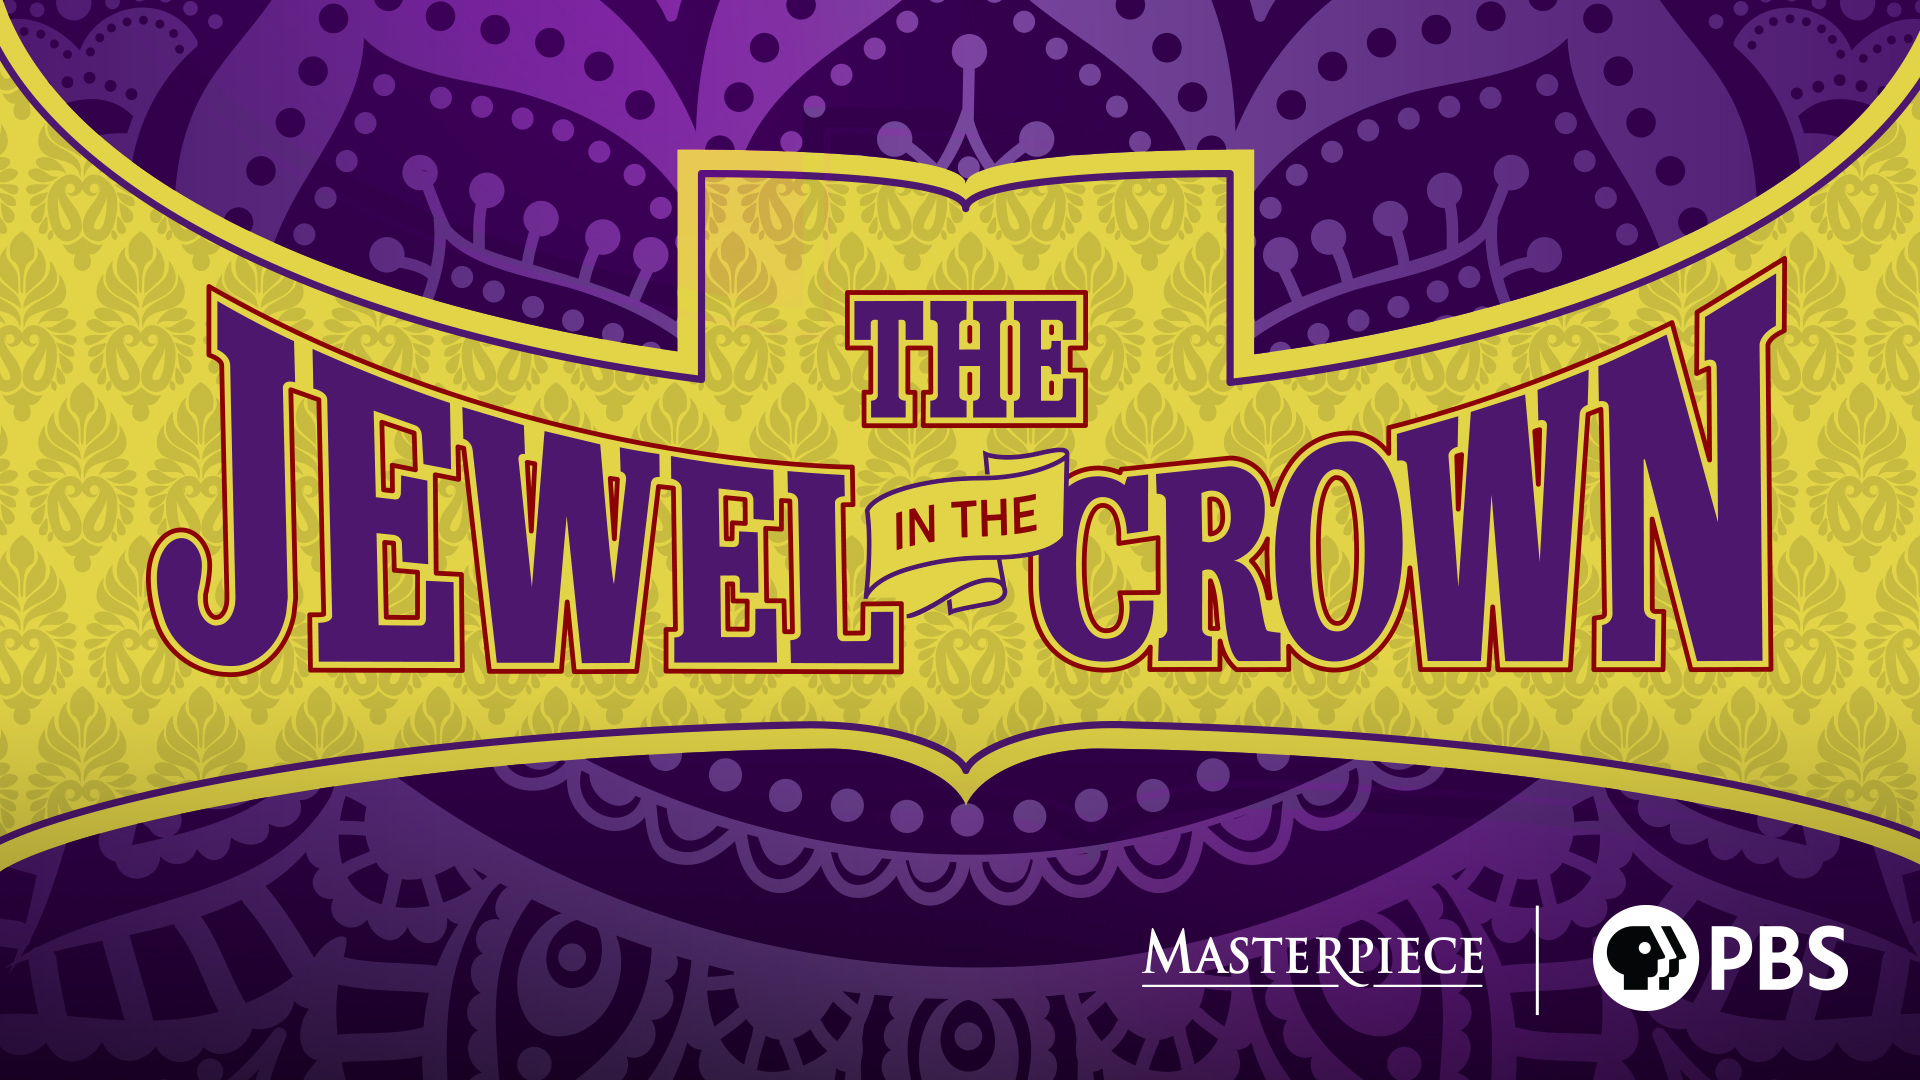 The Jewel in the Crown